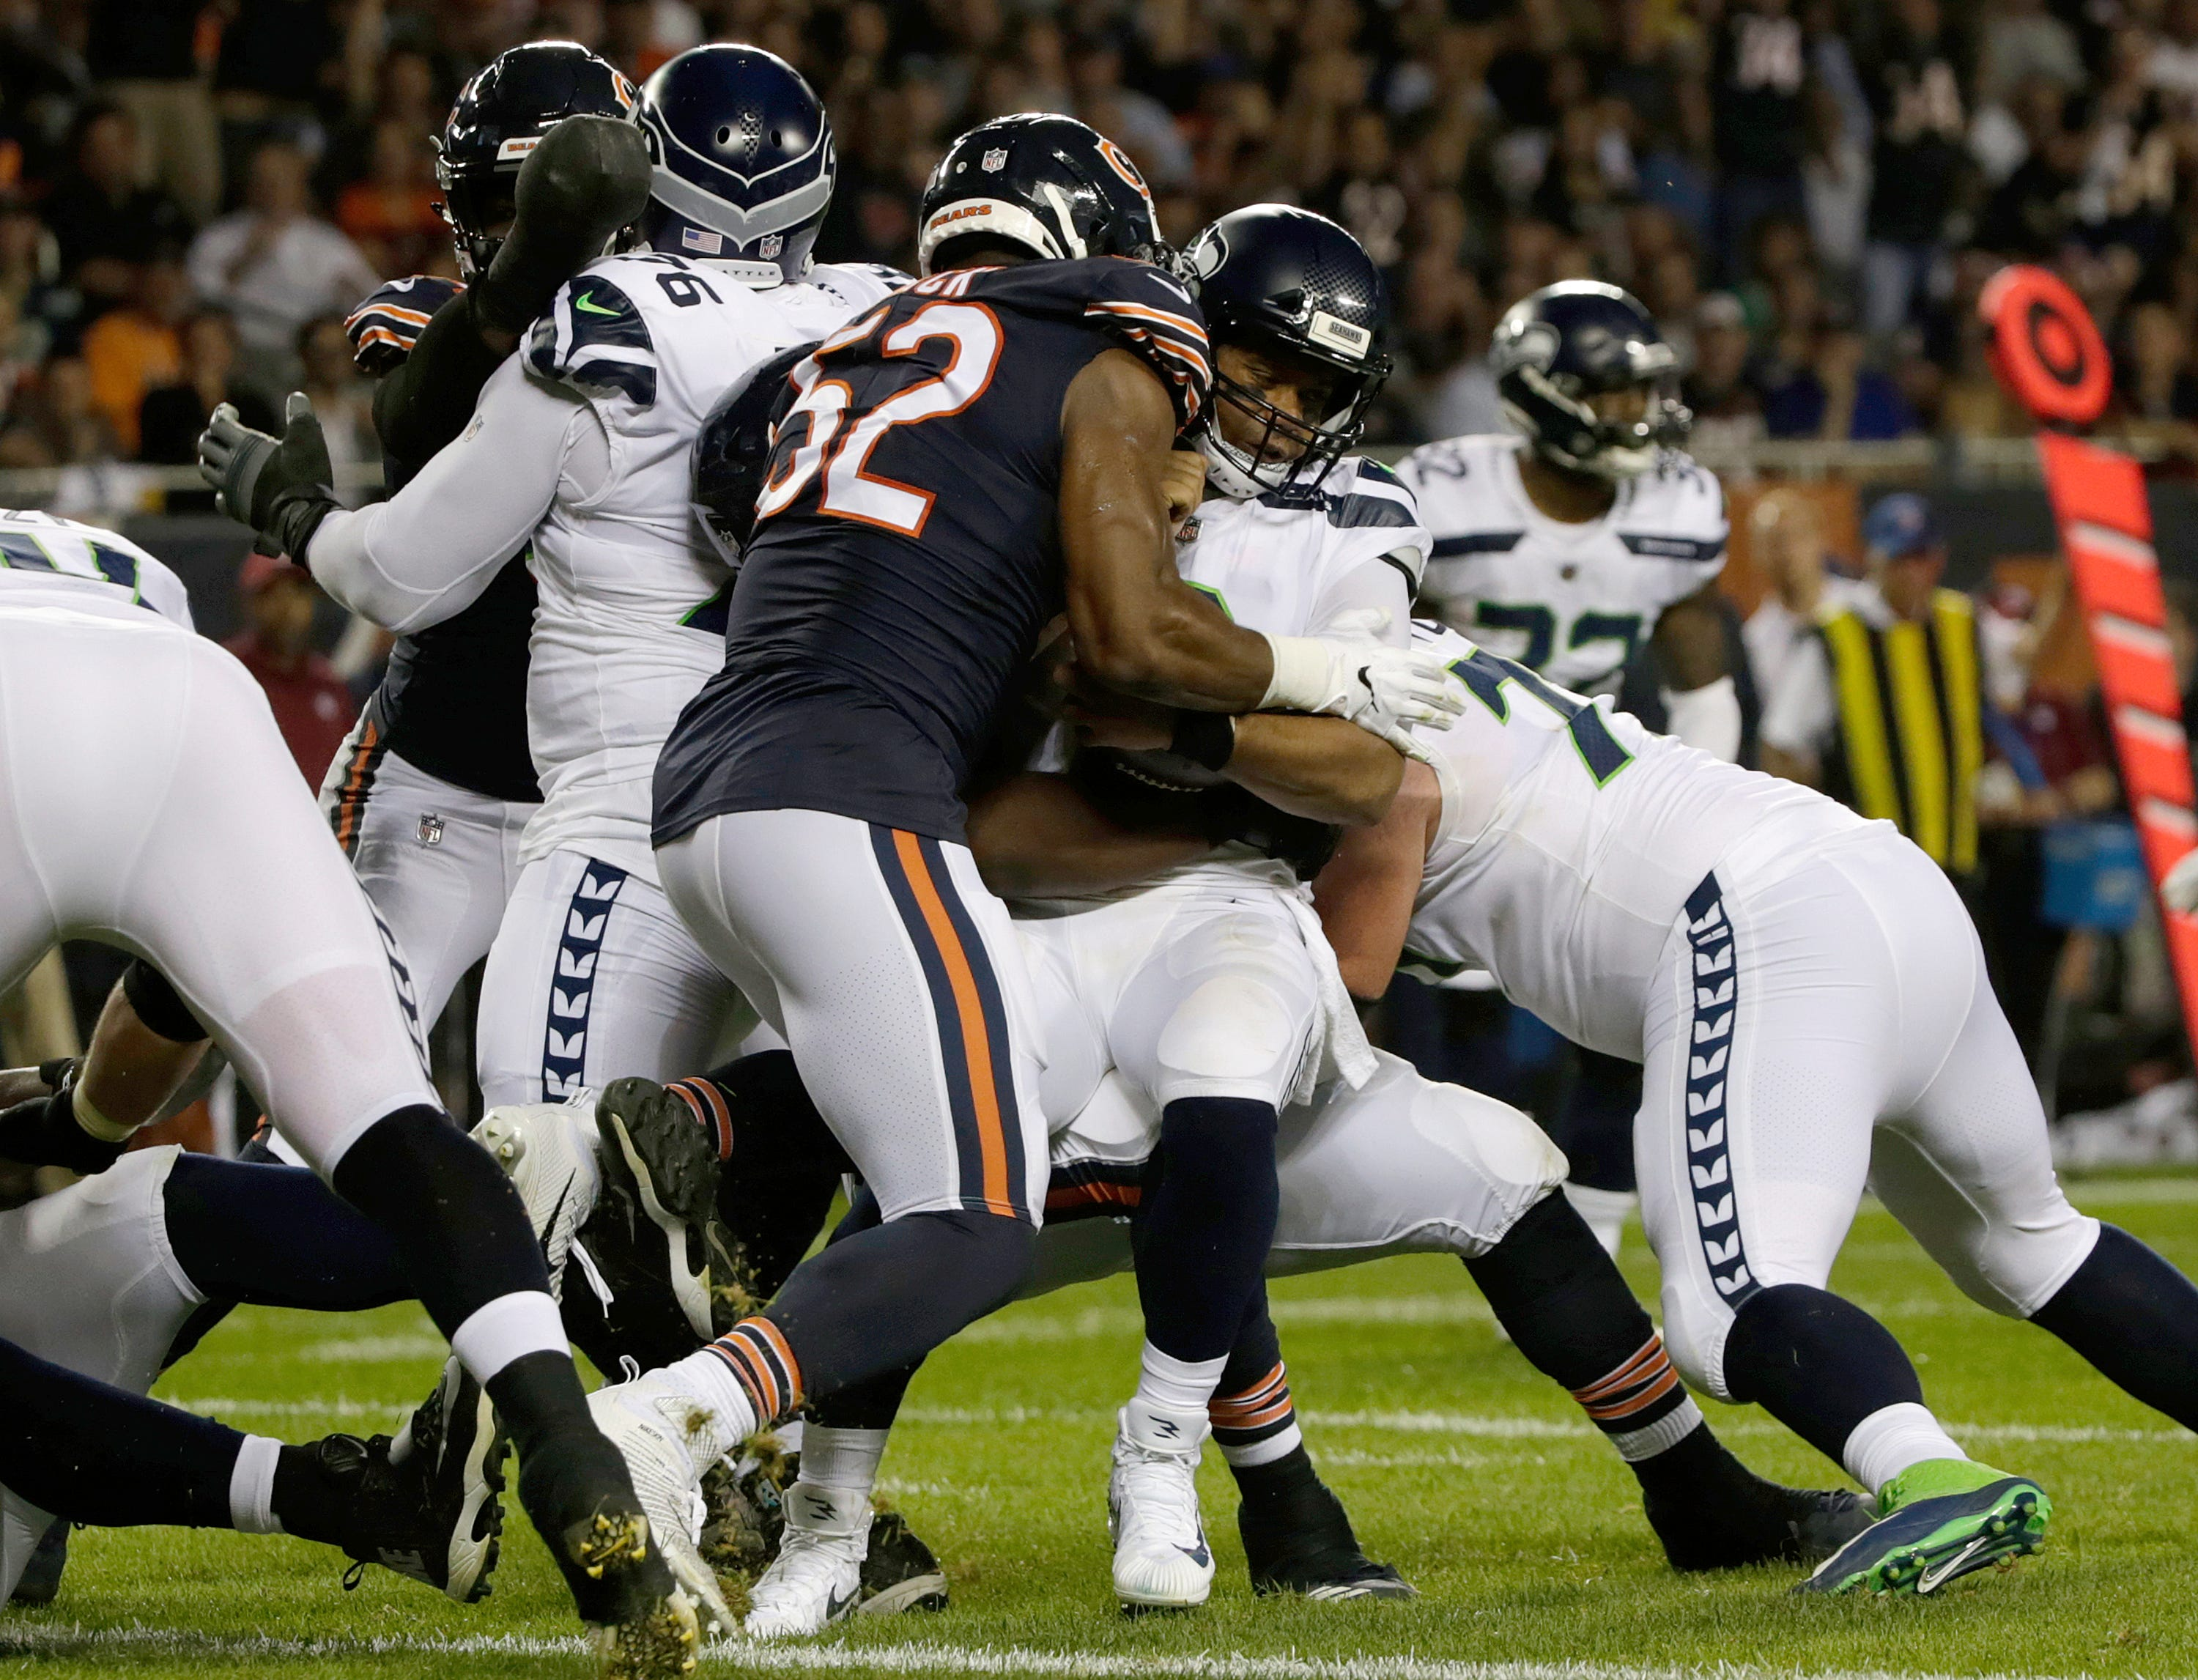 Mack, Amukamara lead Bears over Seahawks 24-17